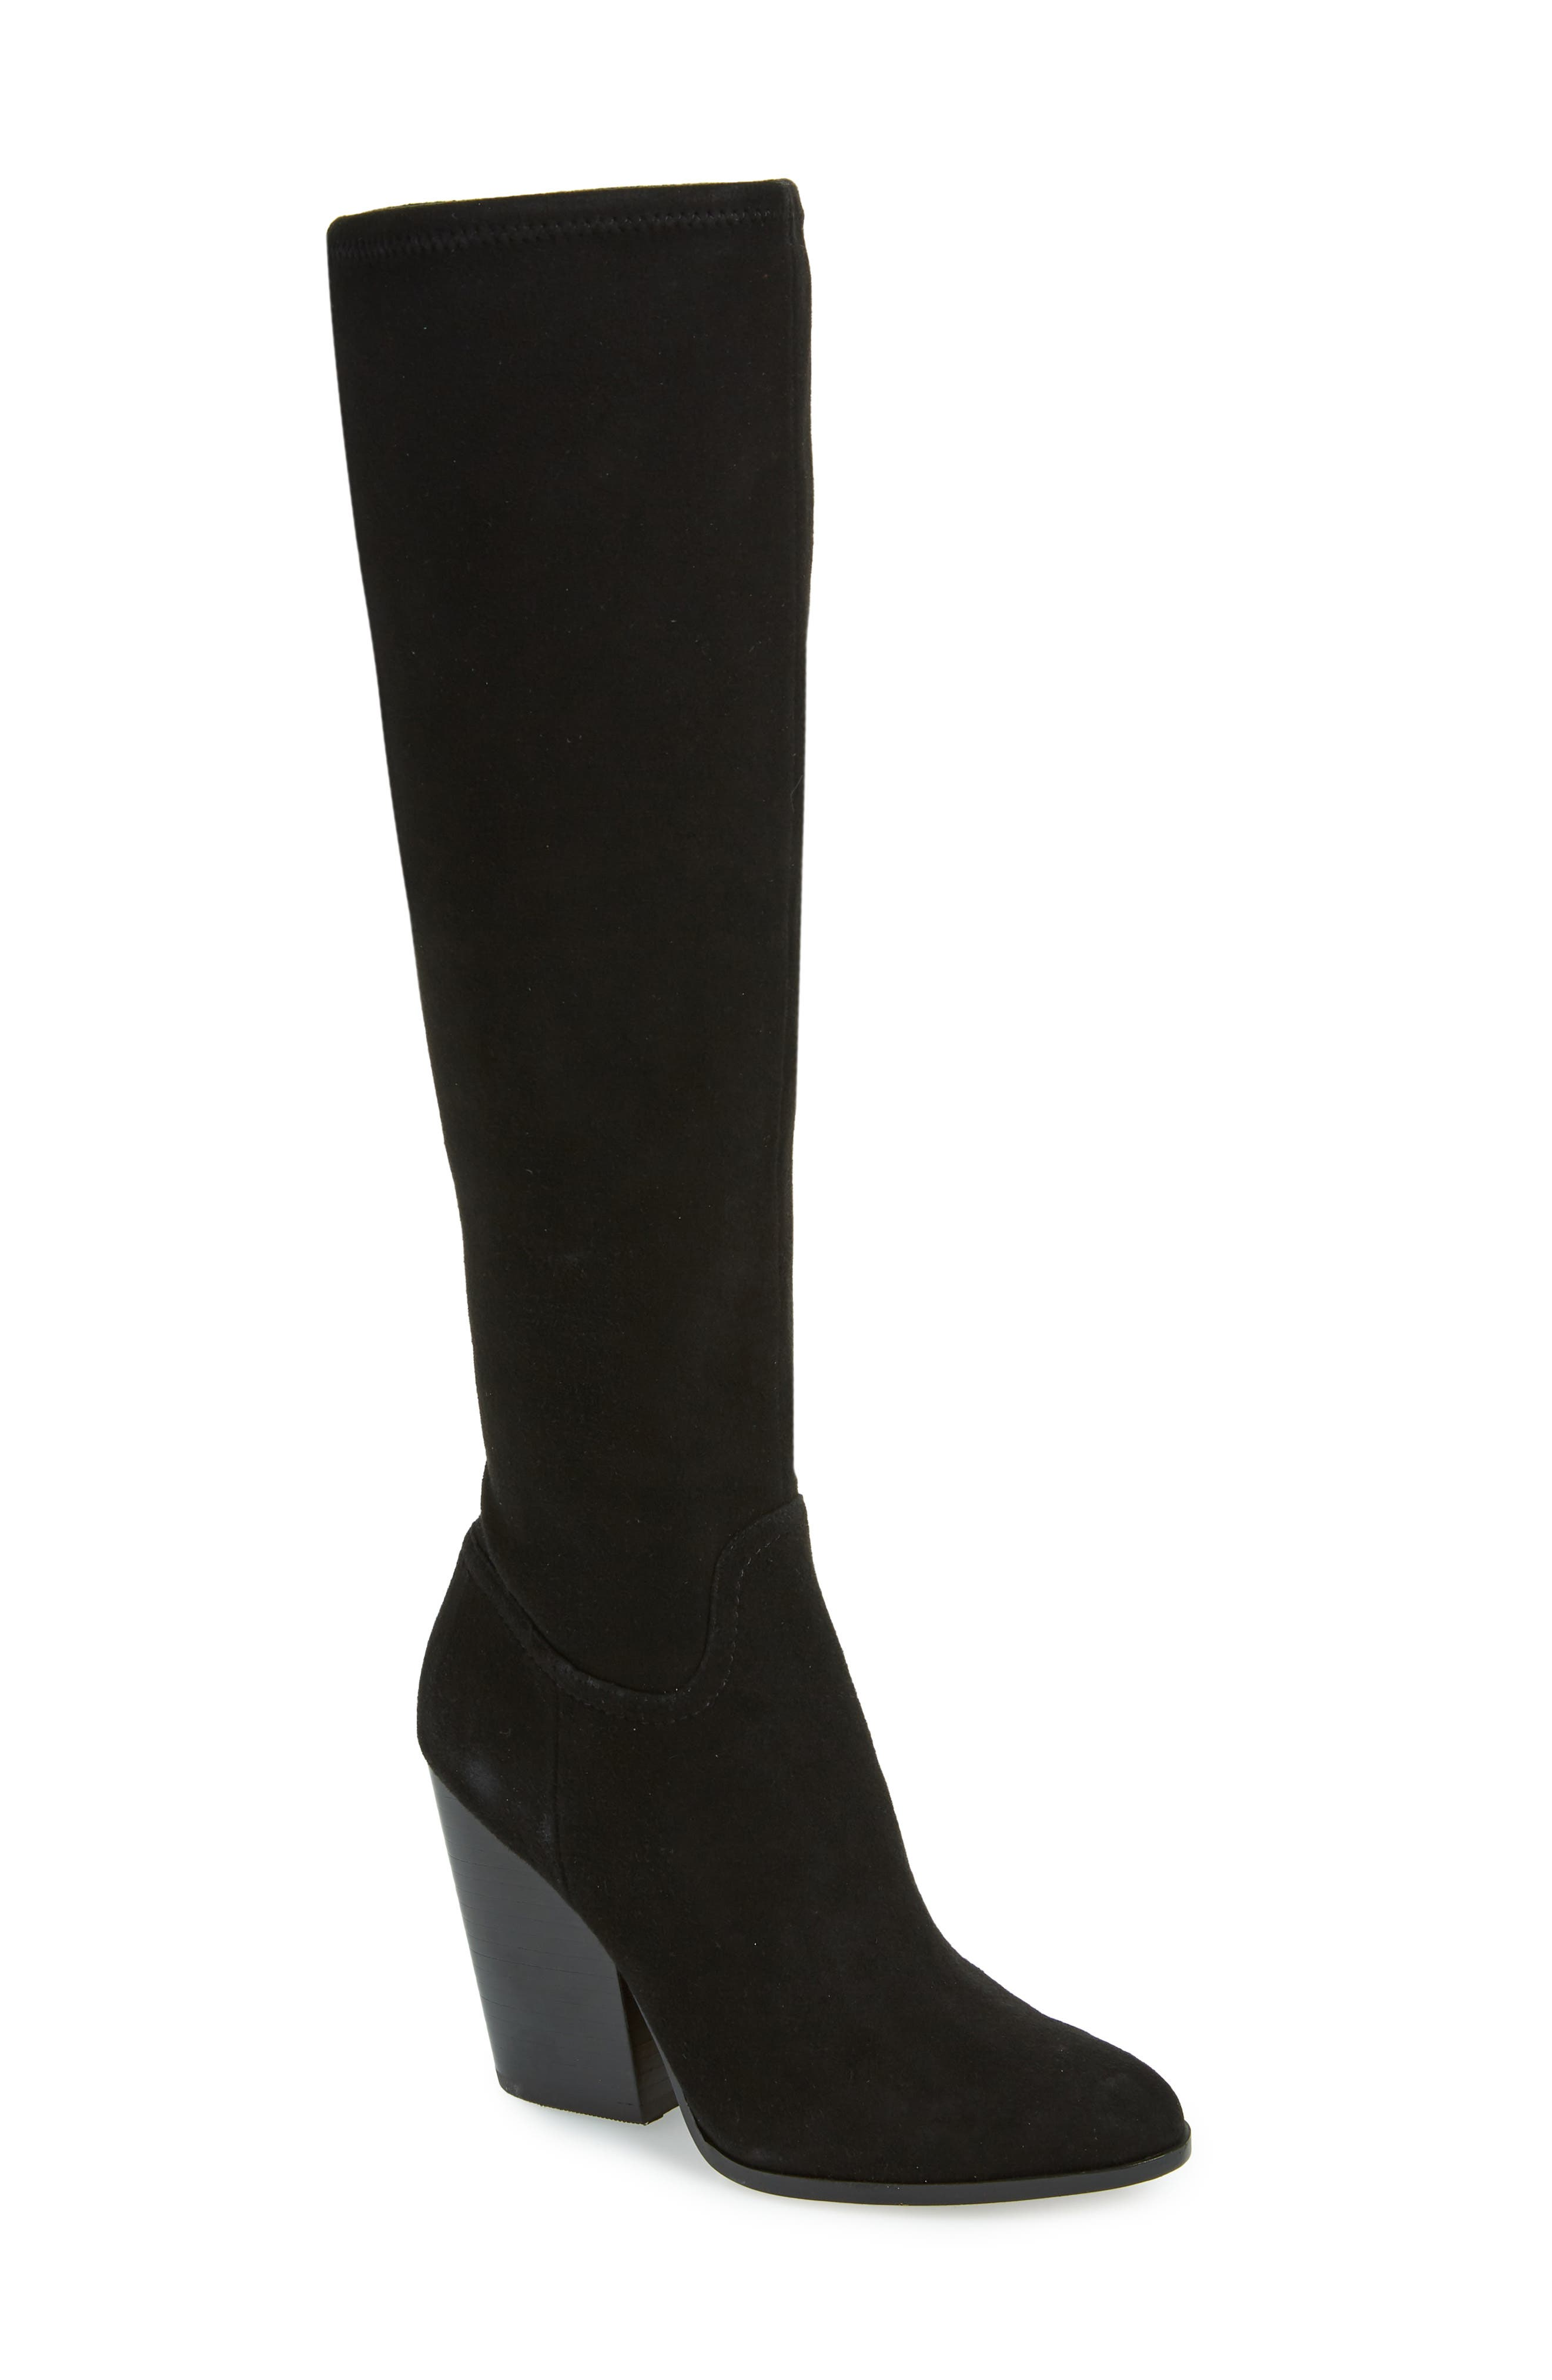 LINEA PAOLO, Elena Knee High Boot, Main thumbnail 1, color, BLACK STRETCH SUEDE